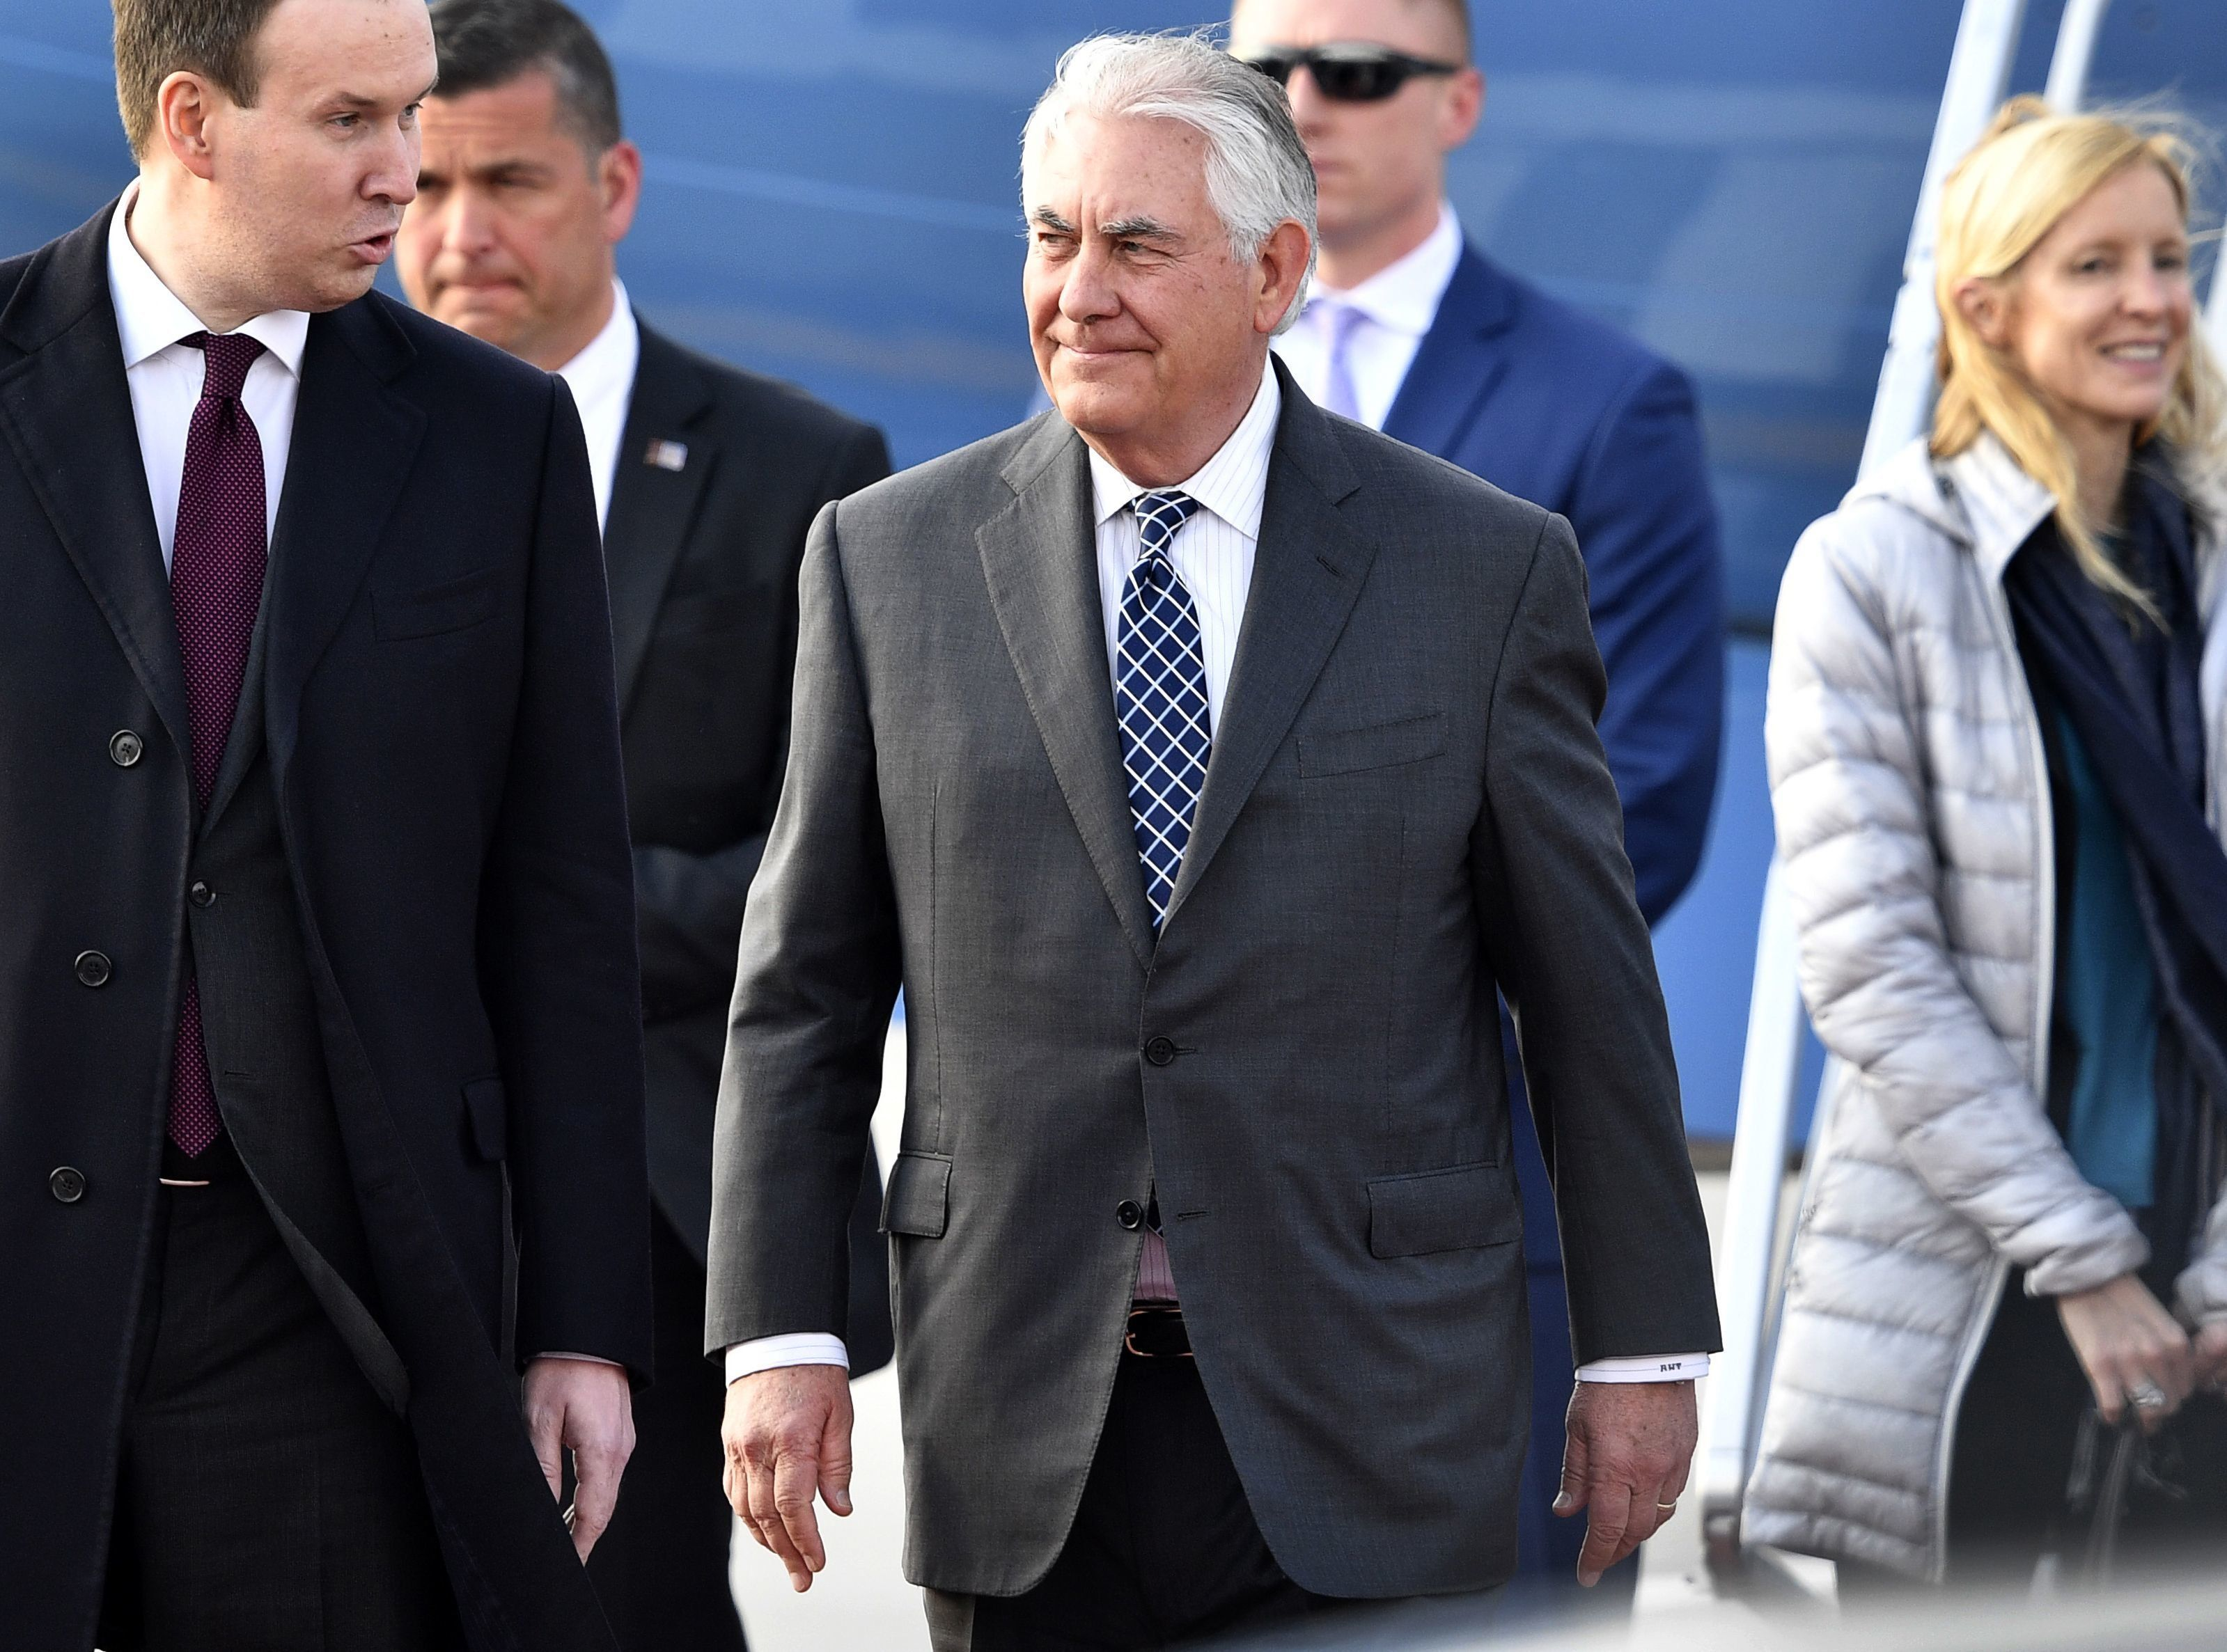 U.S. Secretary of State Rex Tillerson and Russian President Vladimir Putin worked together while Tillerson was CEO of Exxon M